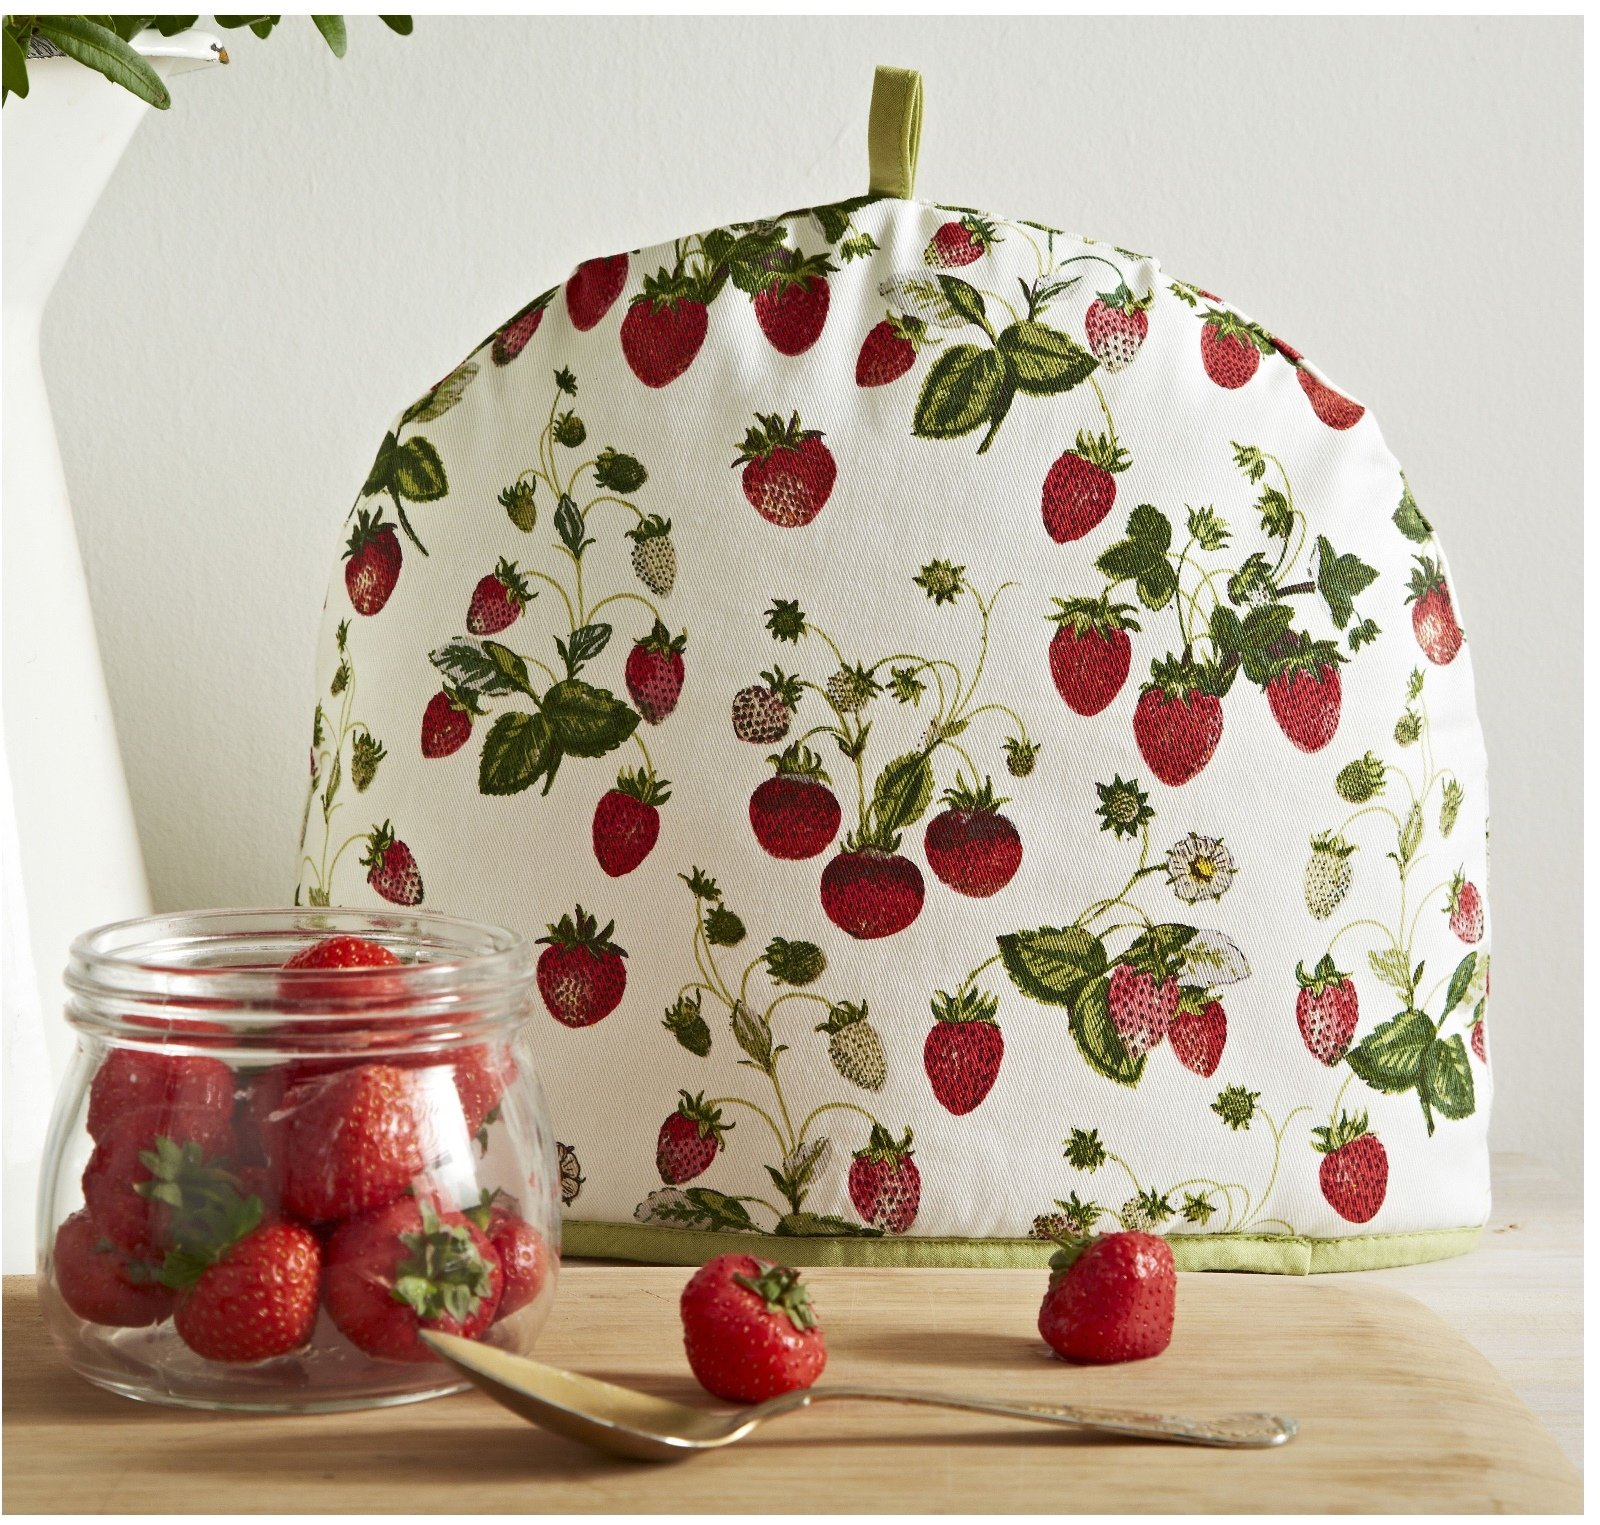 Ulster Weavers RHS Strawberry Tea Cosy by Ulster Weavers (Image #2)